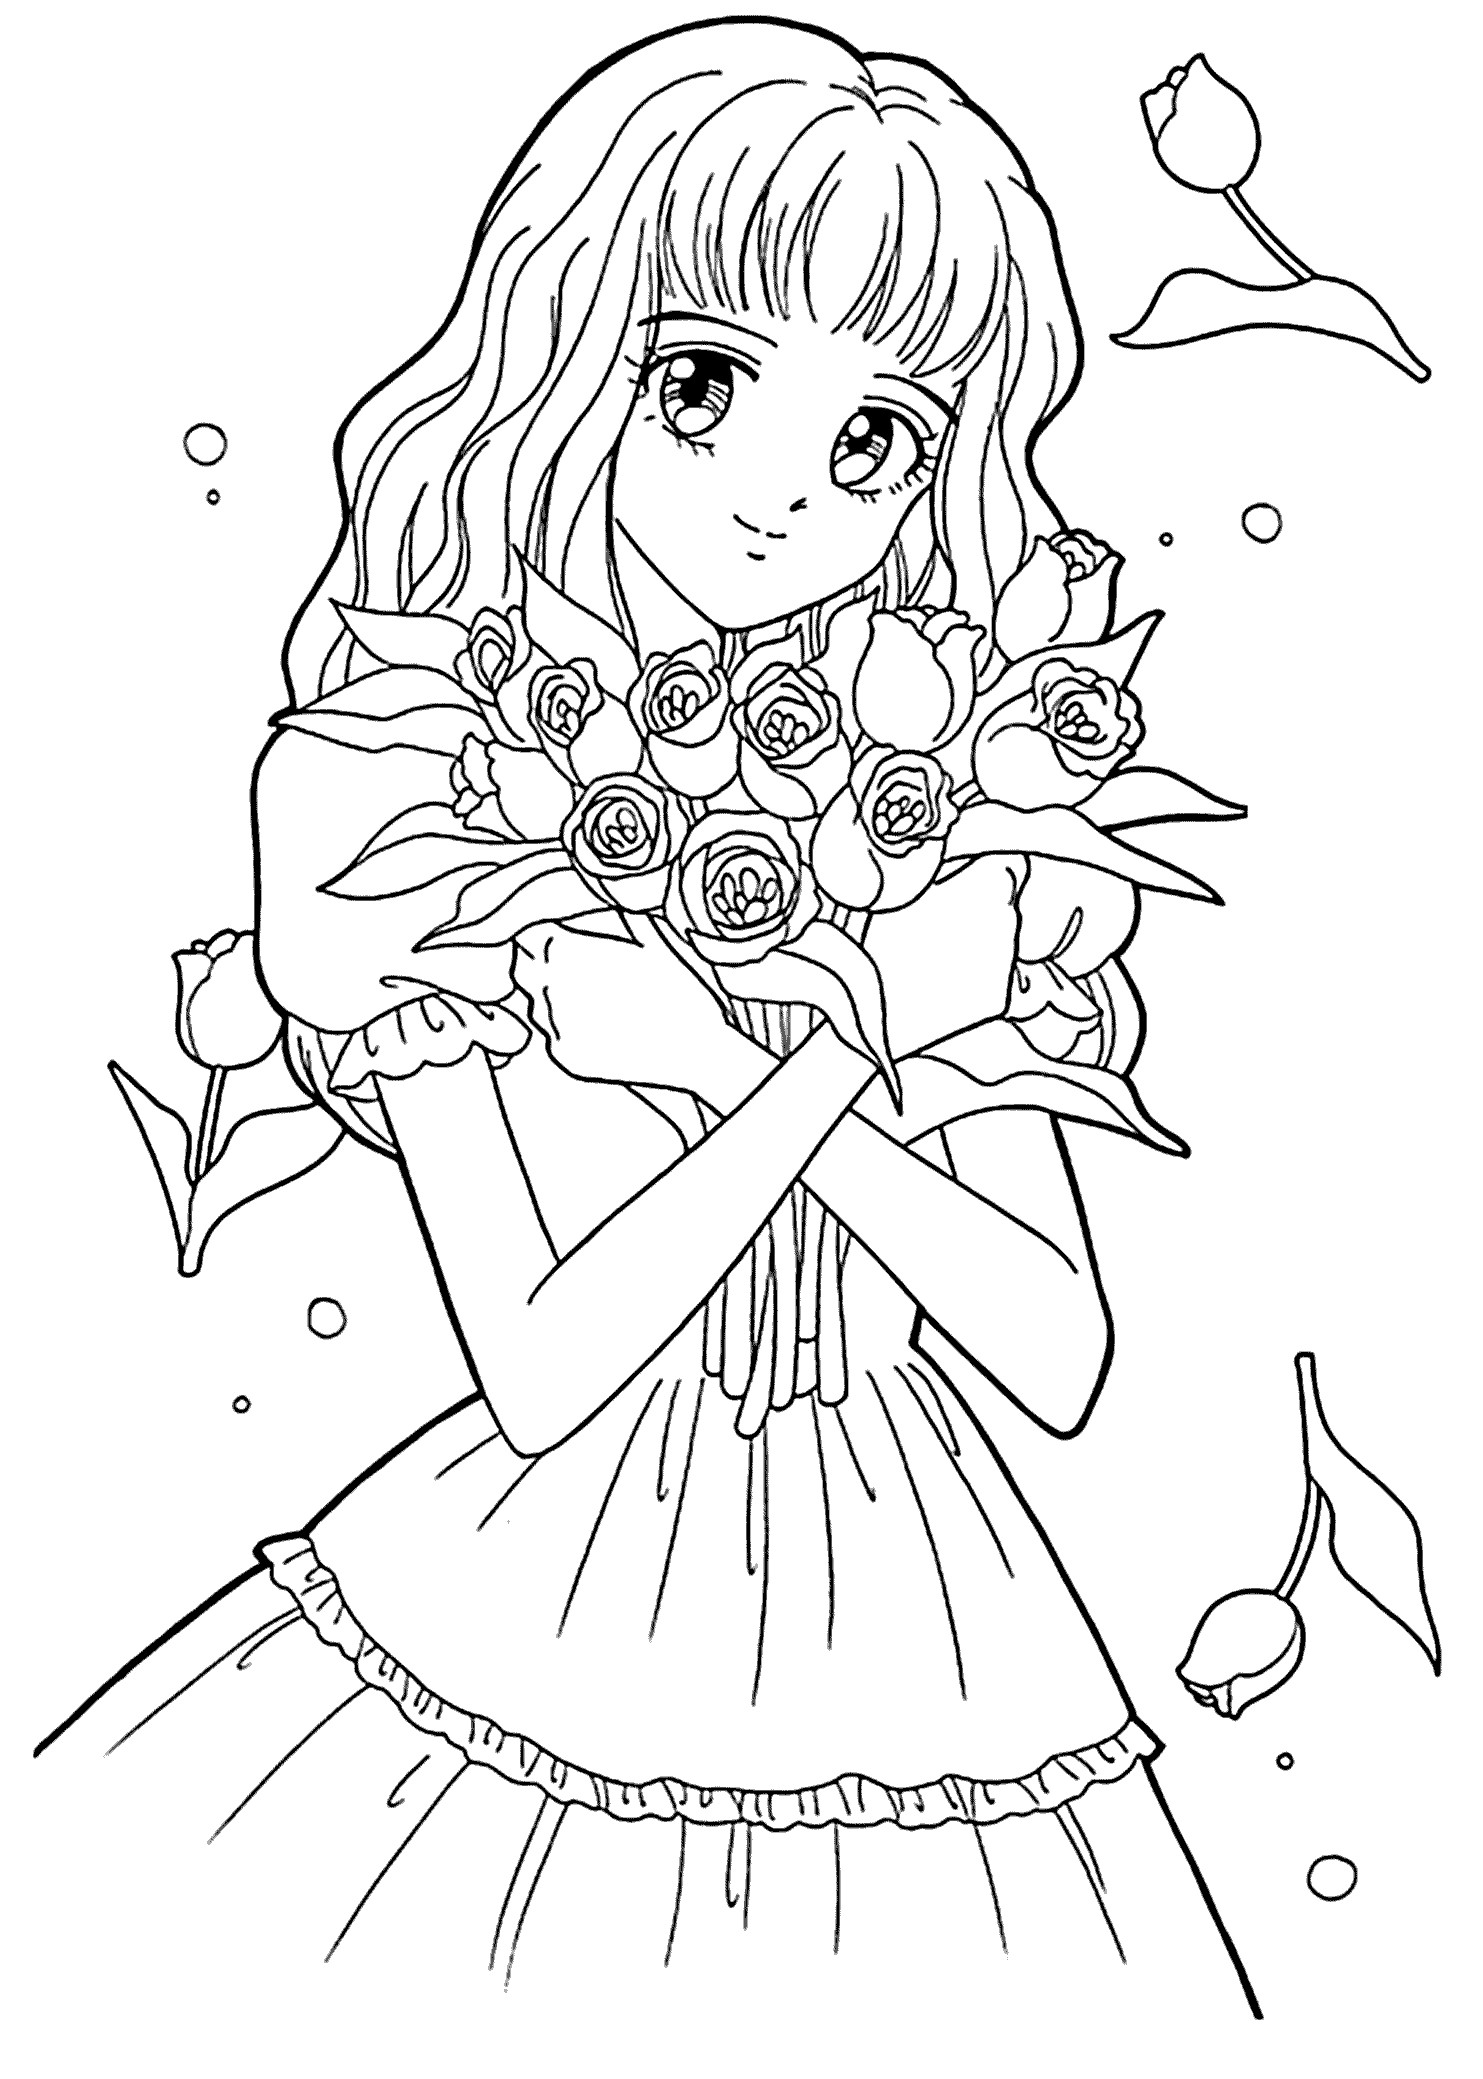 Best ideas about Adult Coloring Pages For Boys . Save or Pin Adult Coloring Pages Anime Collection Now.